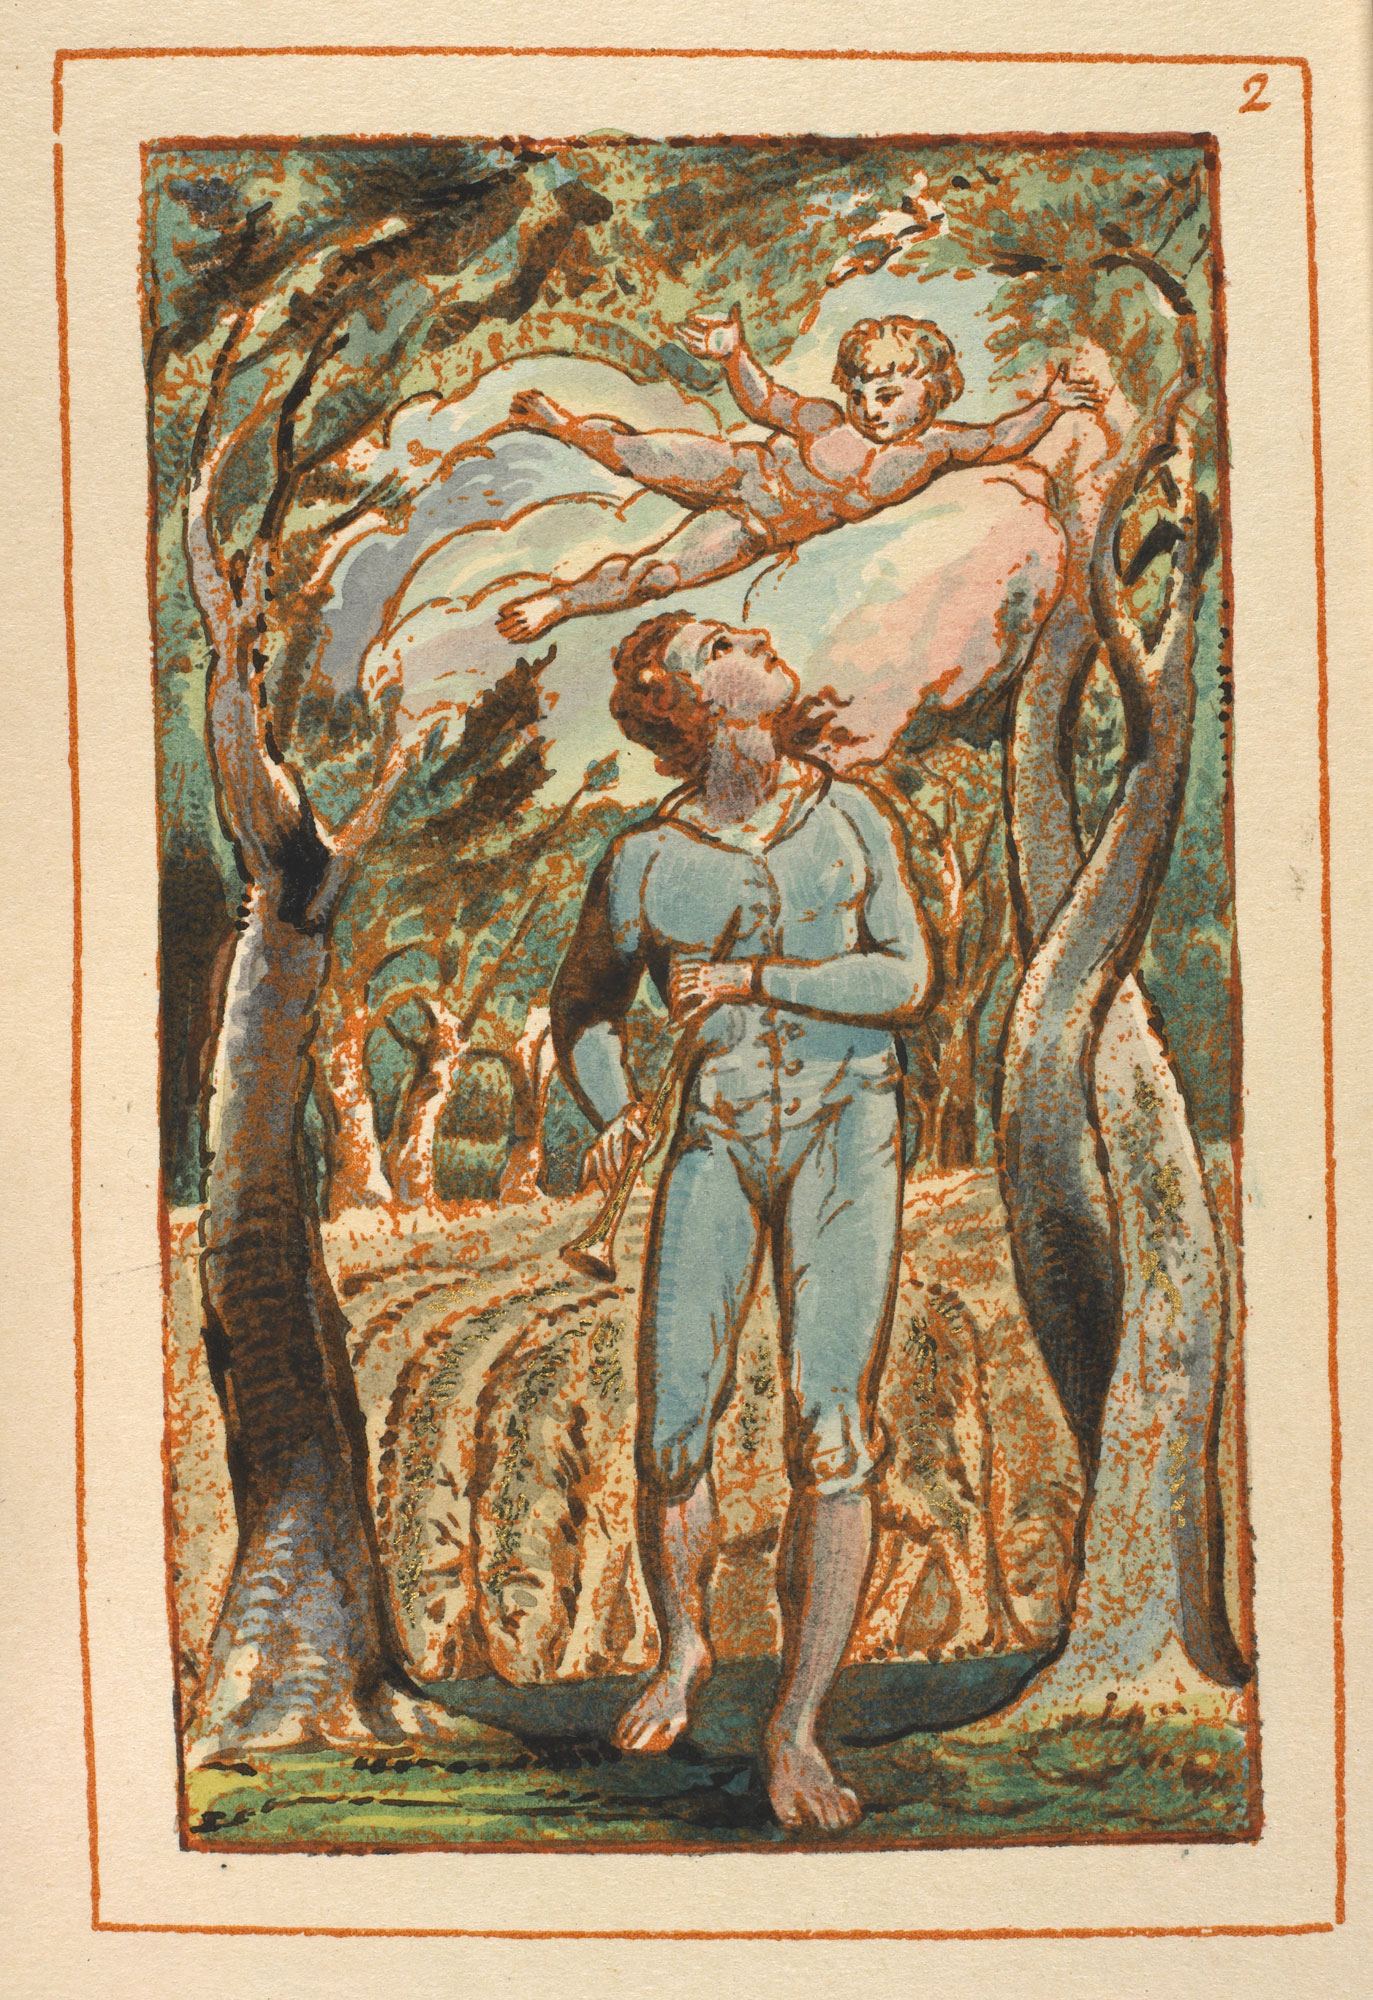 William Blake's Songs of Innocence and Experience [page: 2]